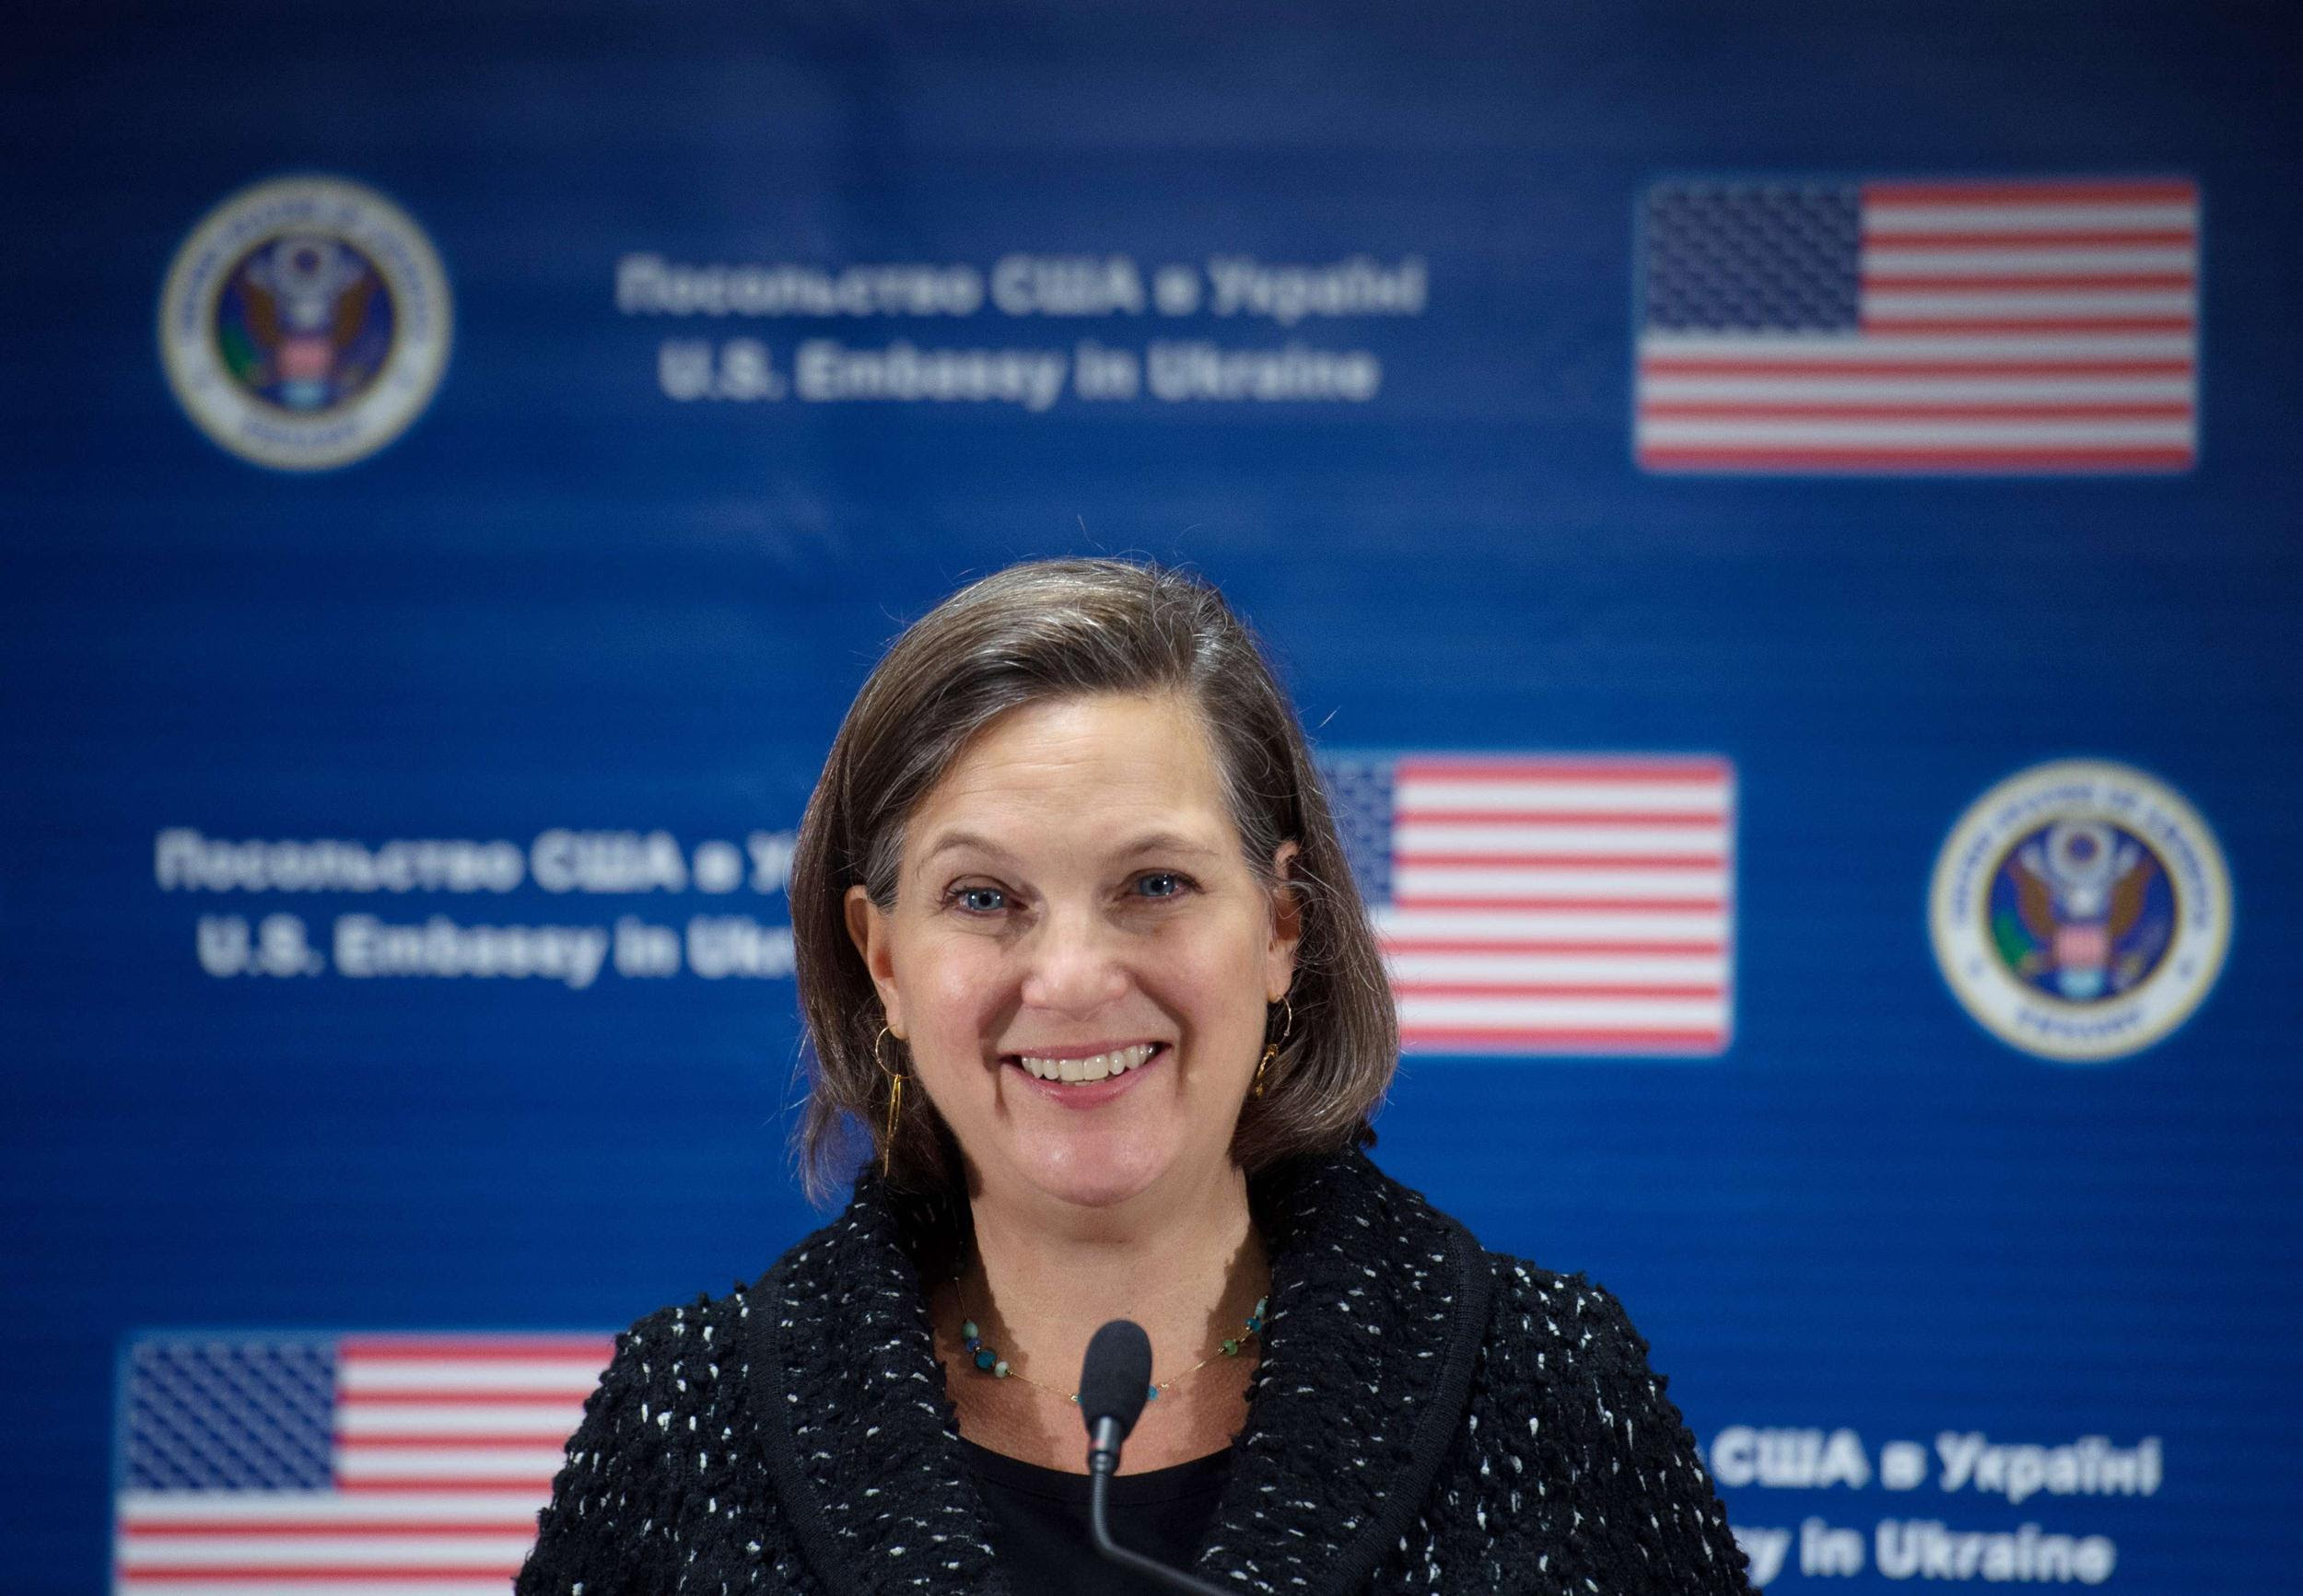 http://media4.s-nbcnews.com/i/newscms/2014_06/170506/140207-nuland-today-830a_43b363195244355cd31576aaeaee310c.jpg